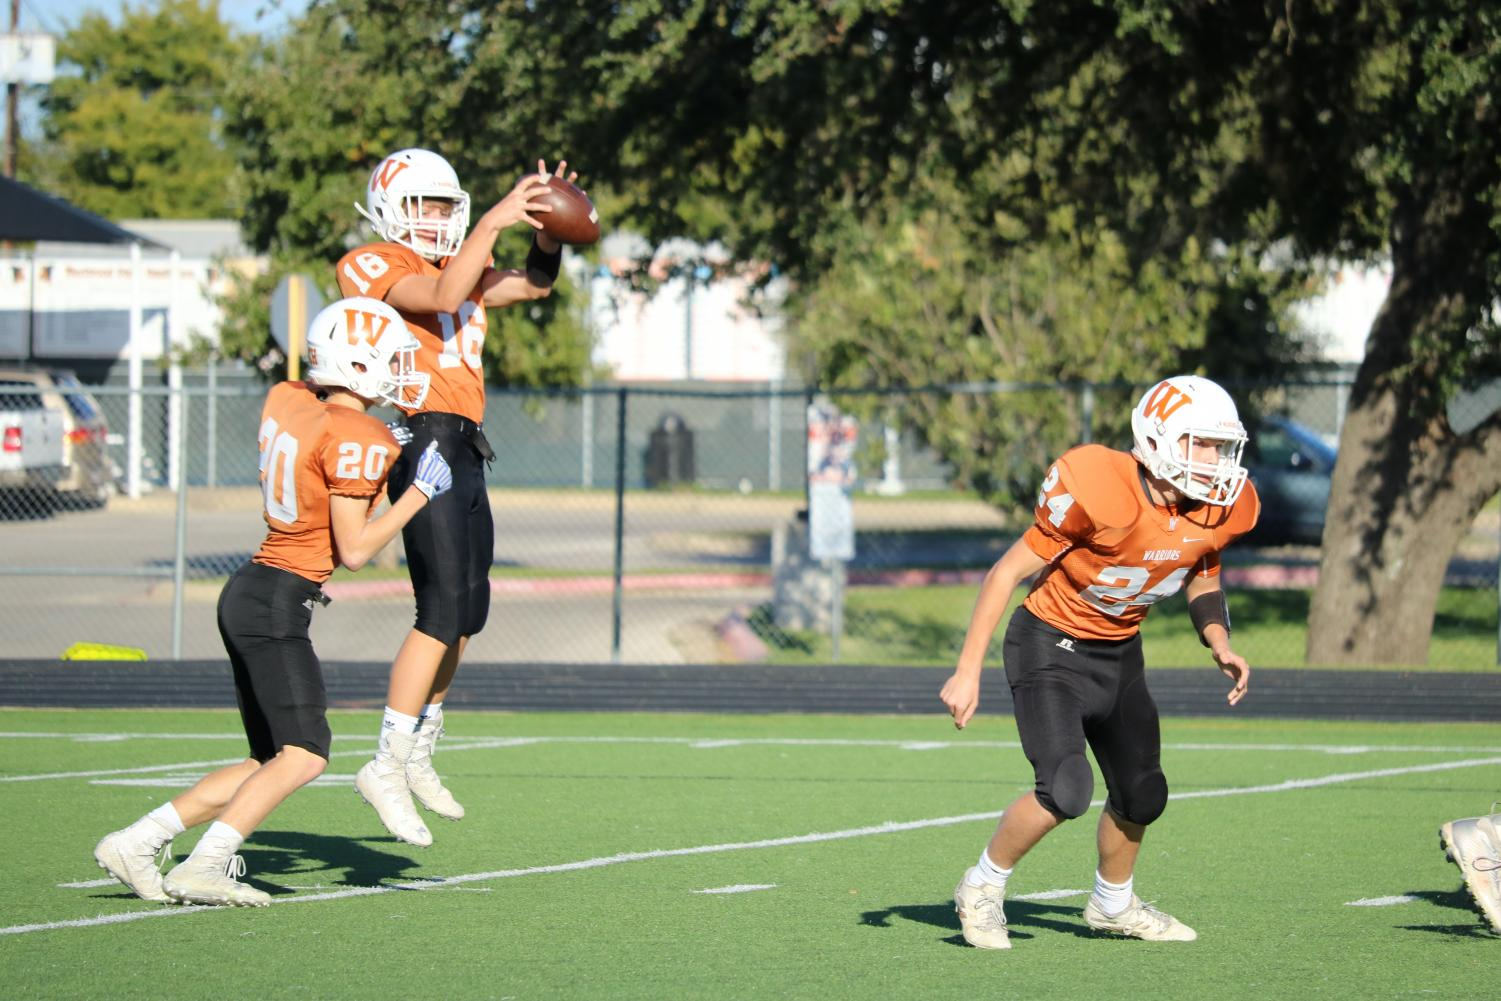 Travis+Neitzke+%2721+catches+the+ball+from+the+center+and+passes+it+off+to+Alex+%09Rusch+%2721.+